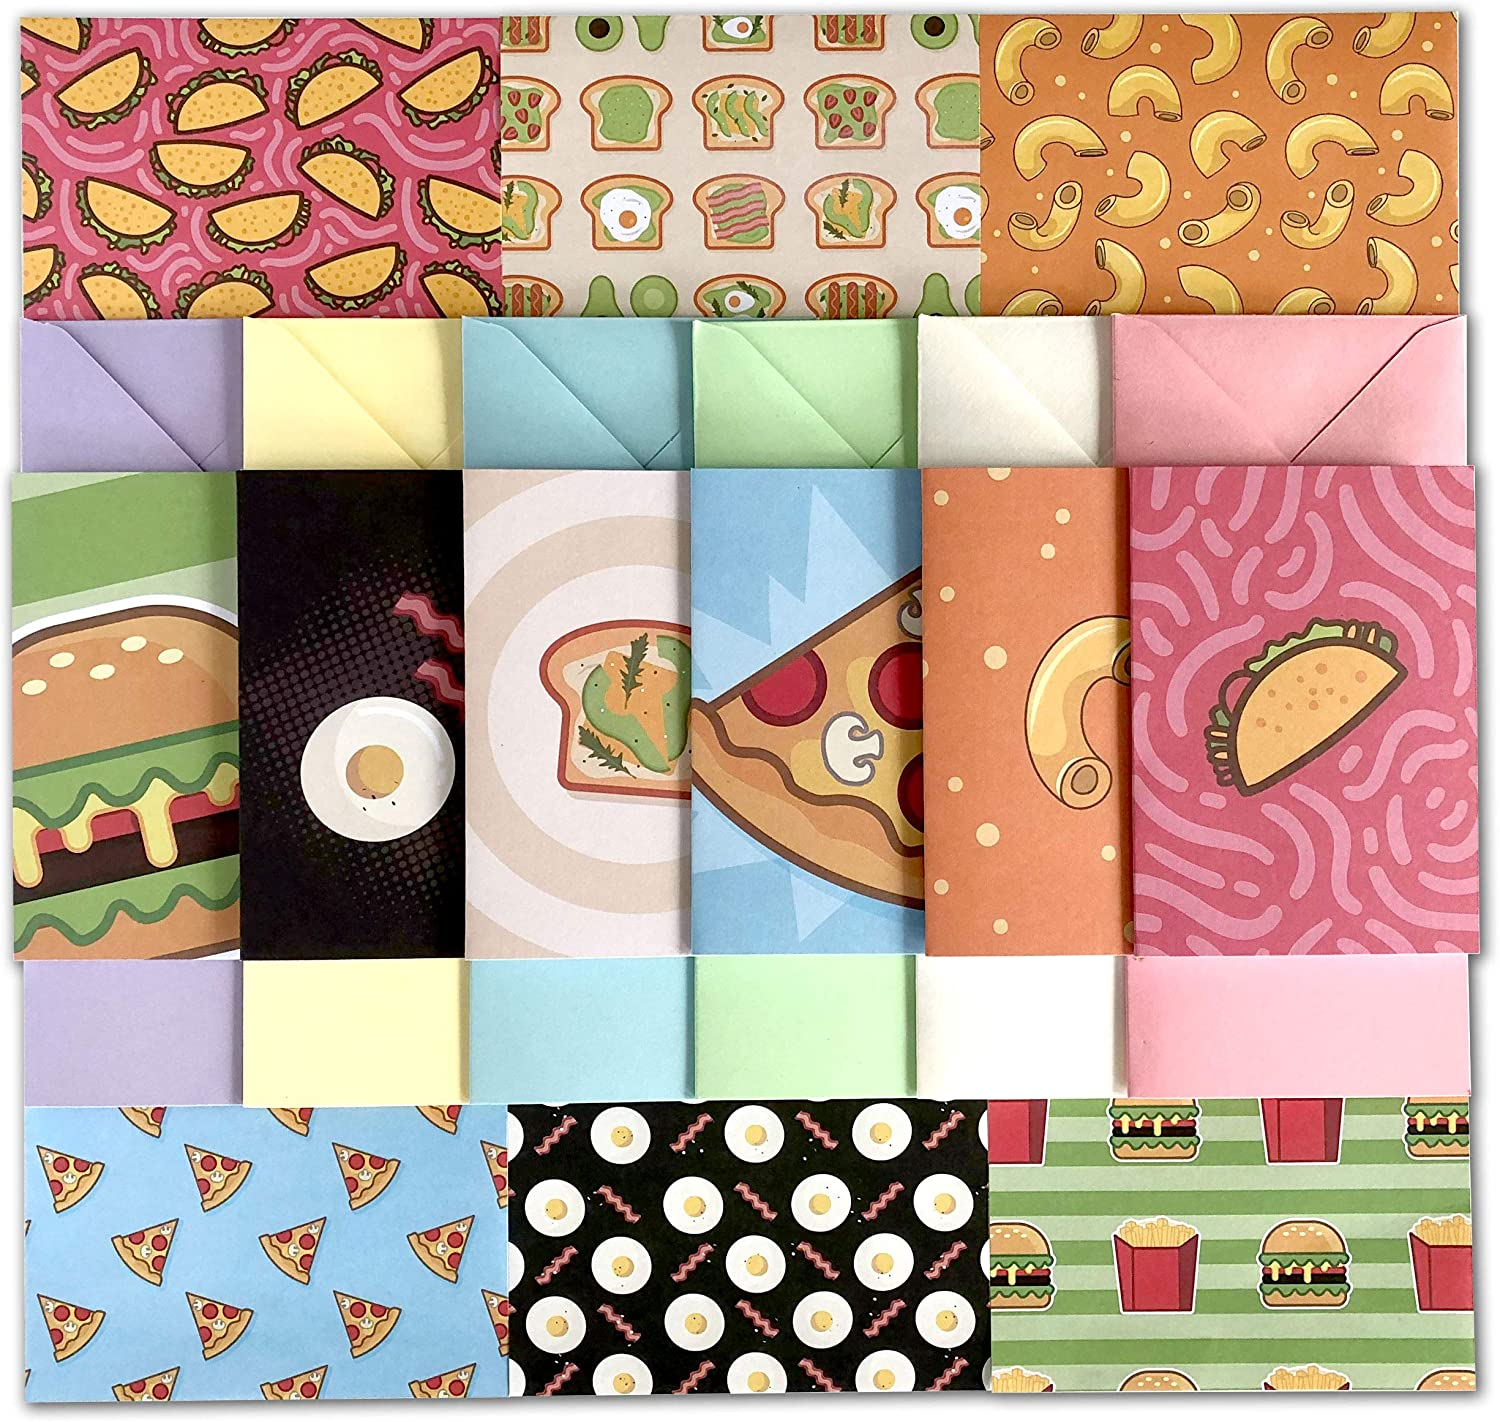 54 Piece Stationary Paper Pack - Fun & Colorful Themes - Pen Pal Set Includes Printed Paper & Greeting Cards With Matching Envelopes (Food Festivities)